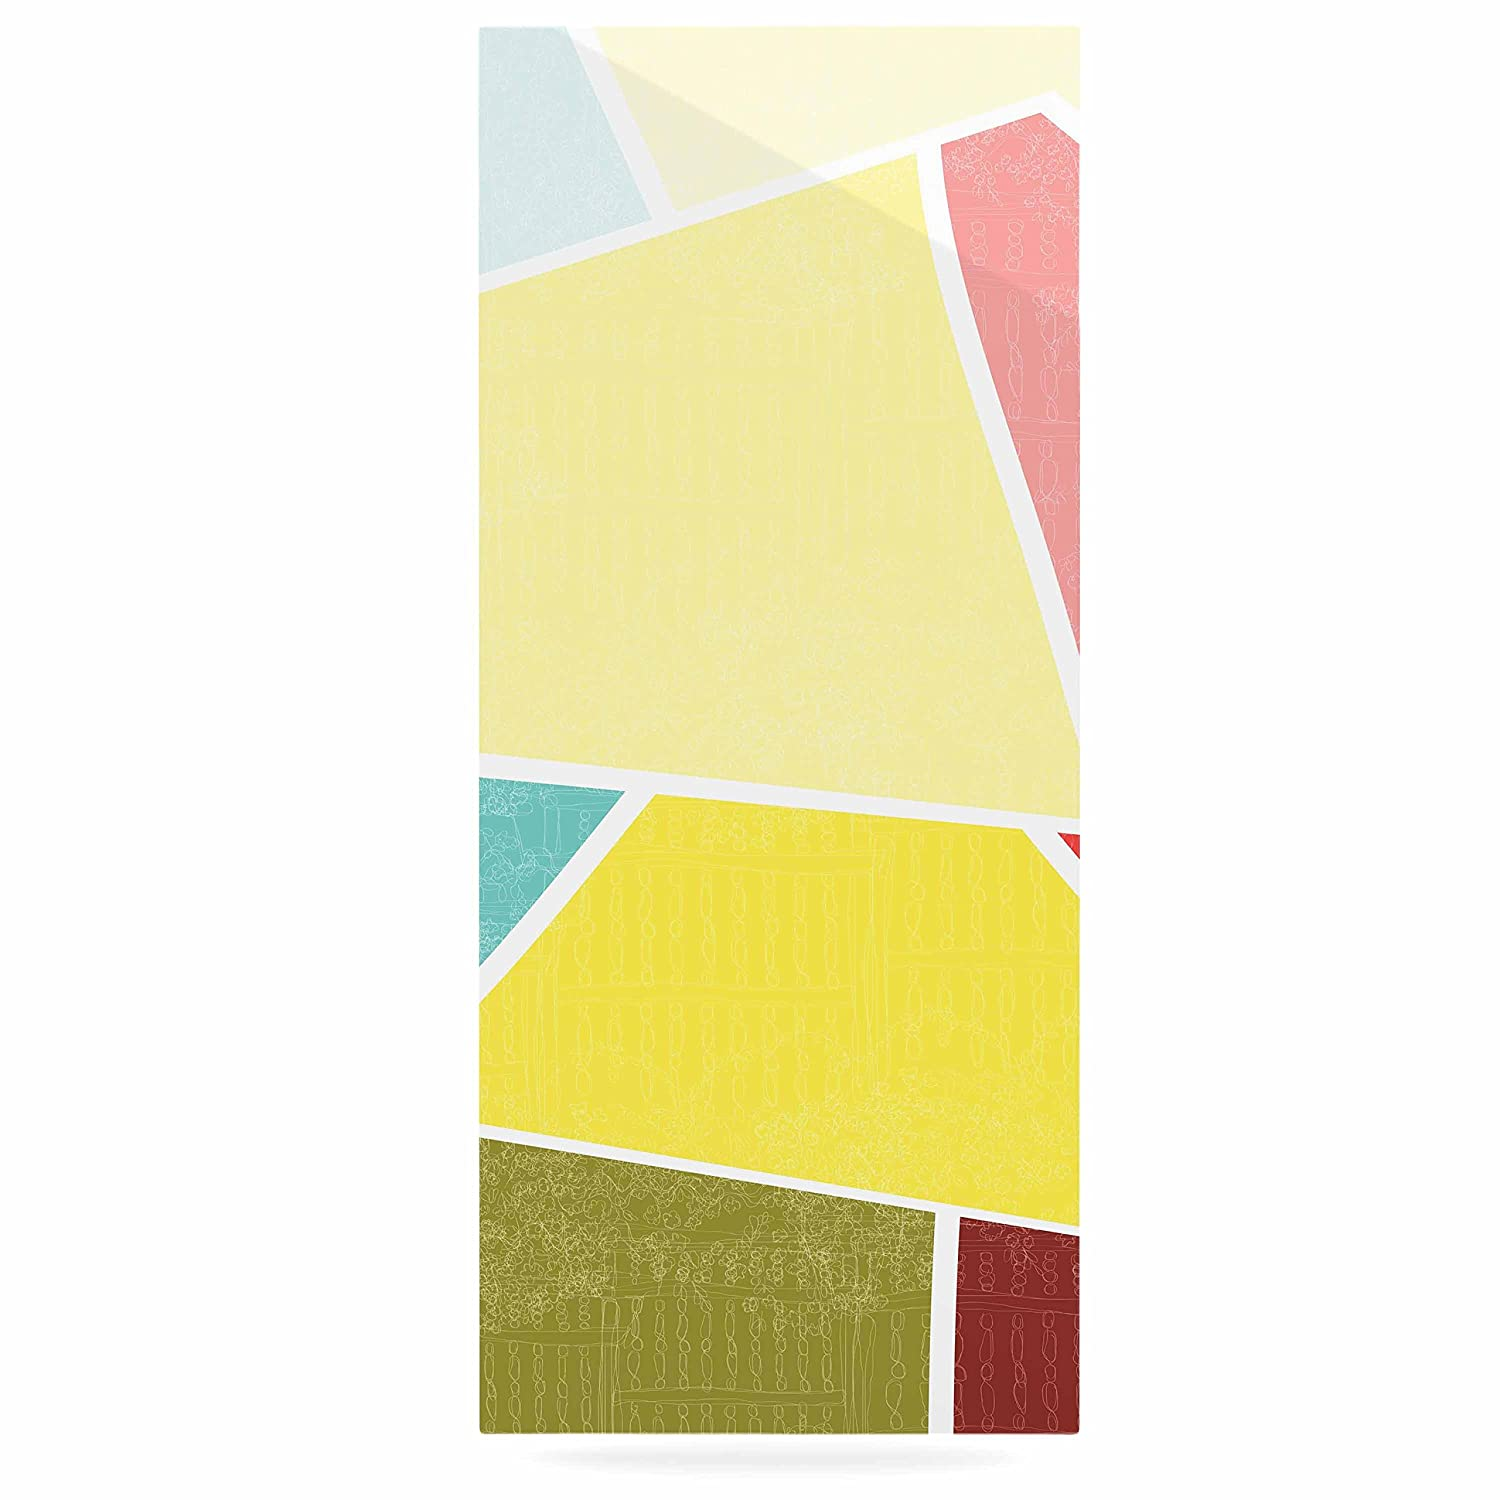 24 x 36 Kess InHouse MaJoBV Cartagena Balconies Teal Red Yellow Luxe Rectangle Panel